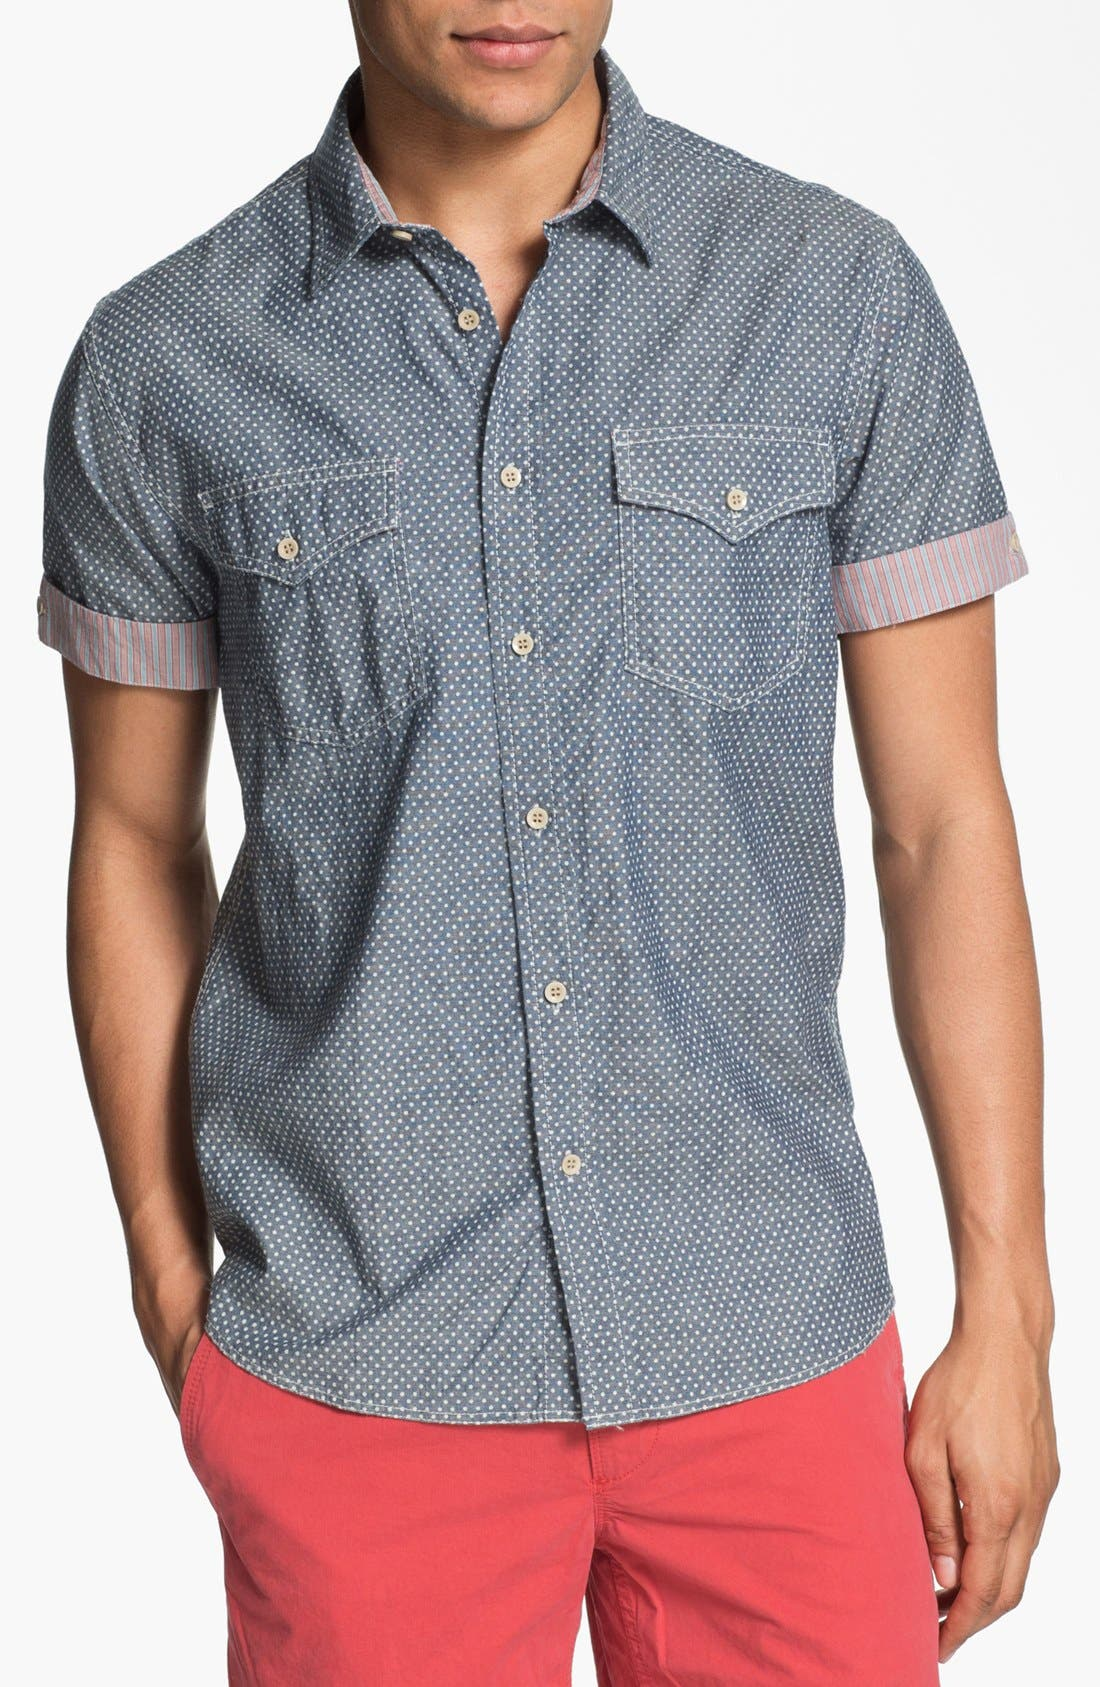 Alternate Image 1 Selected - Just A Cheap Shirt Slim Fit Sport Shirt